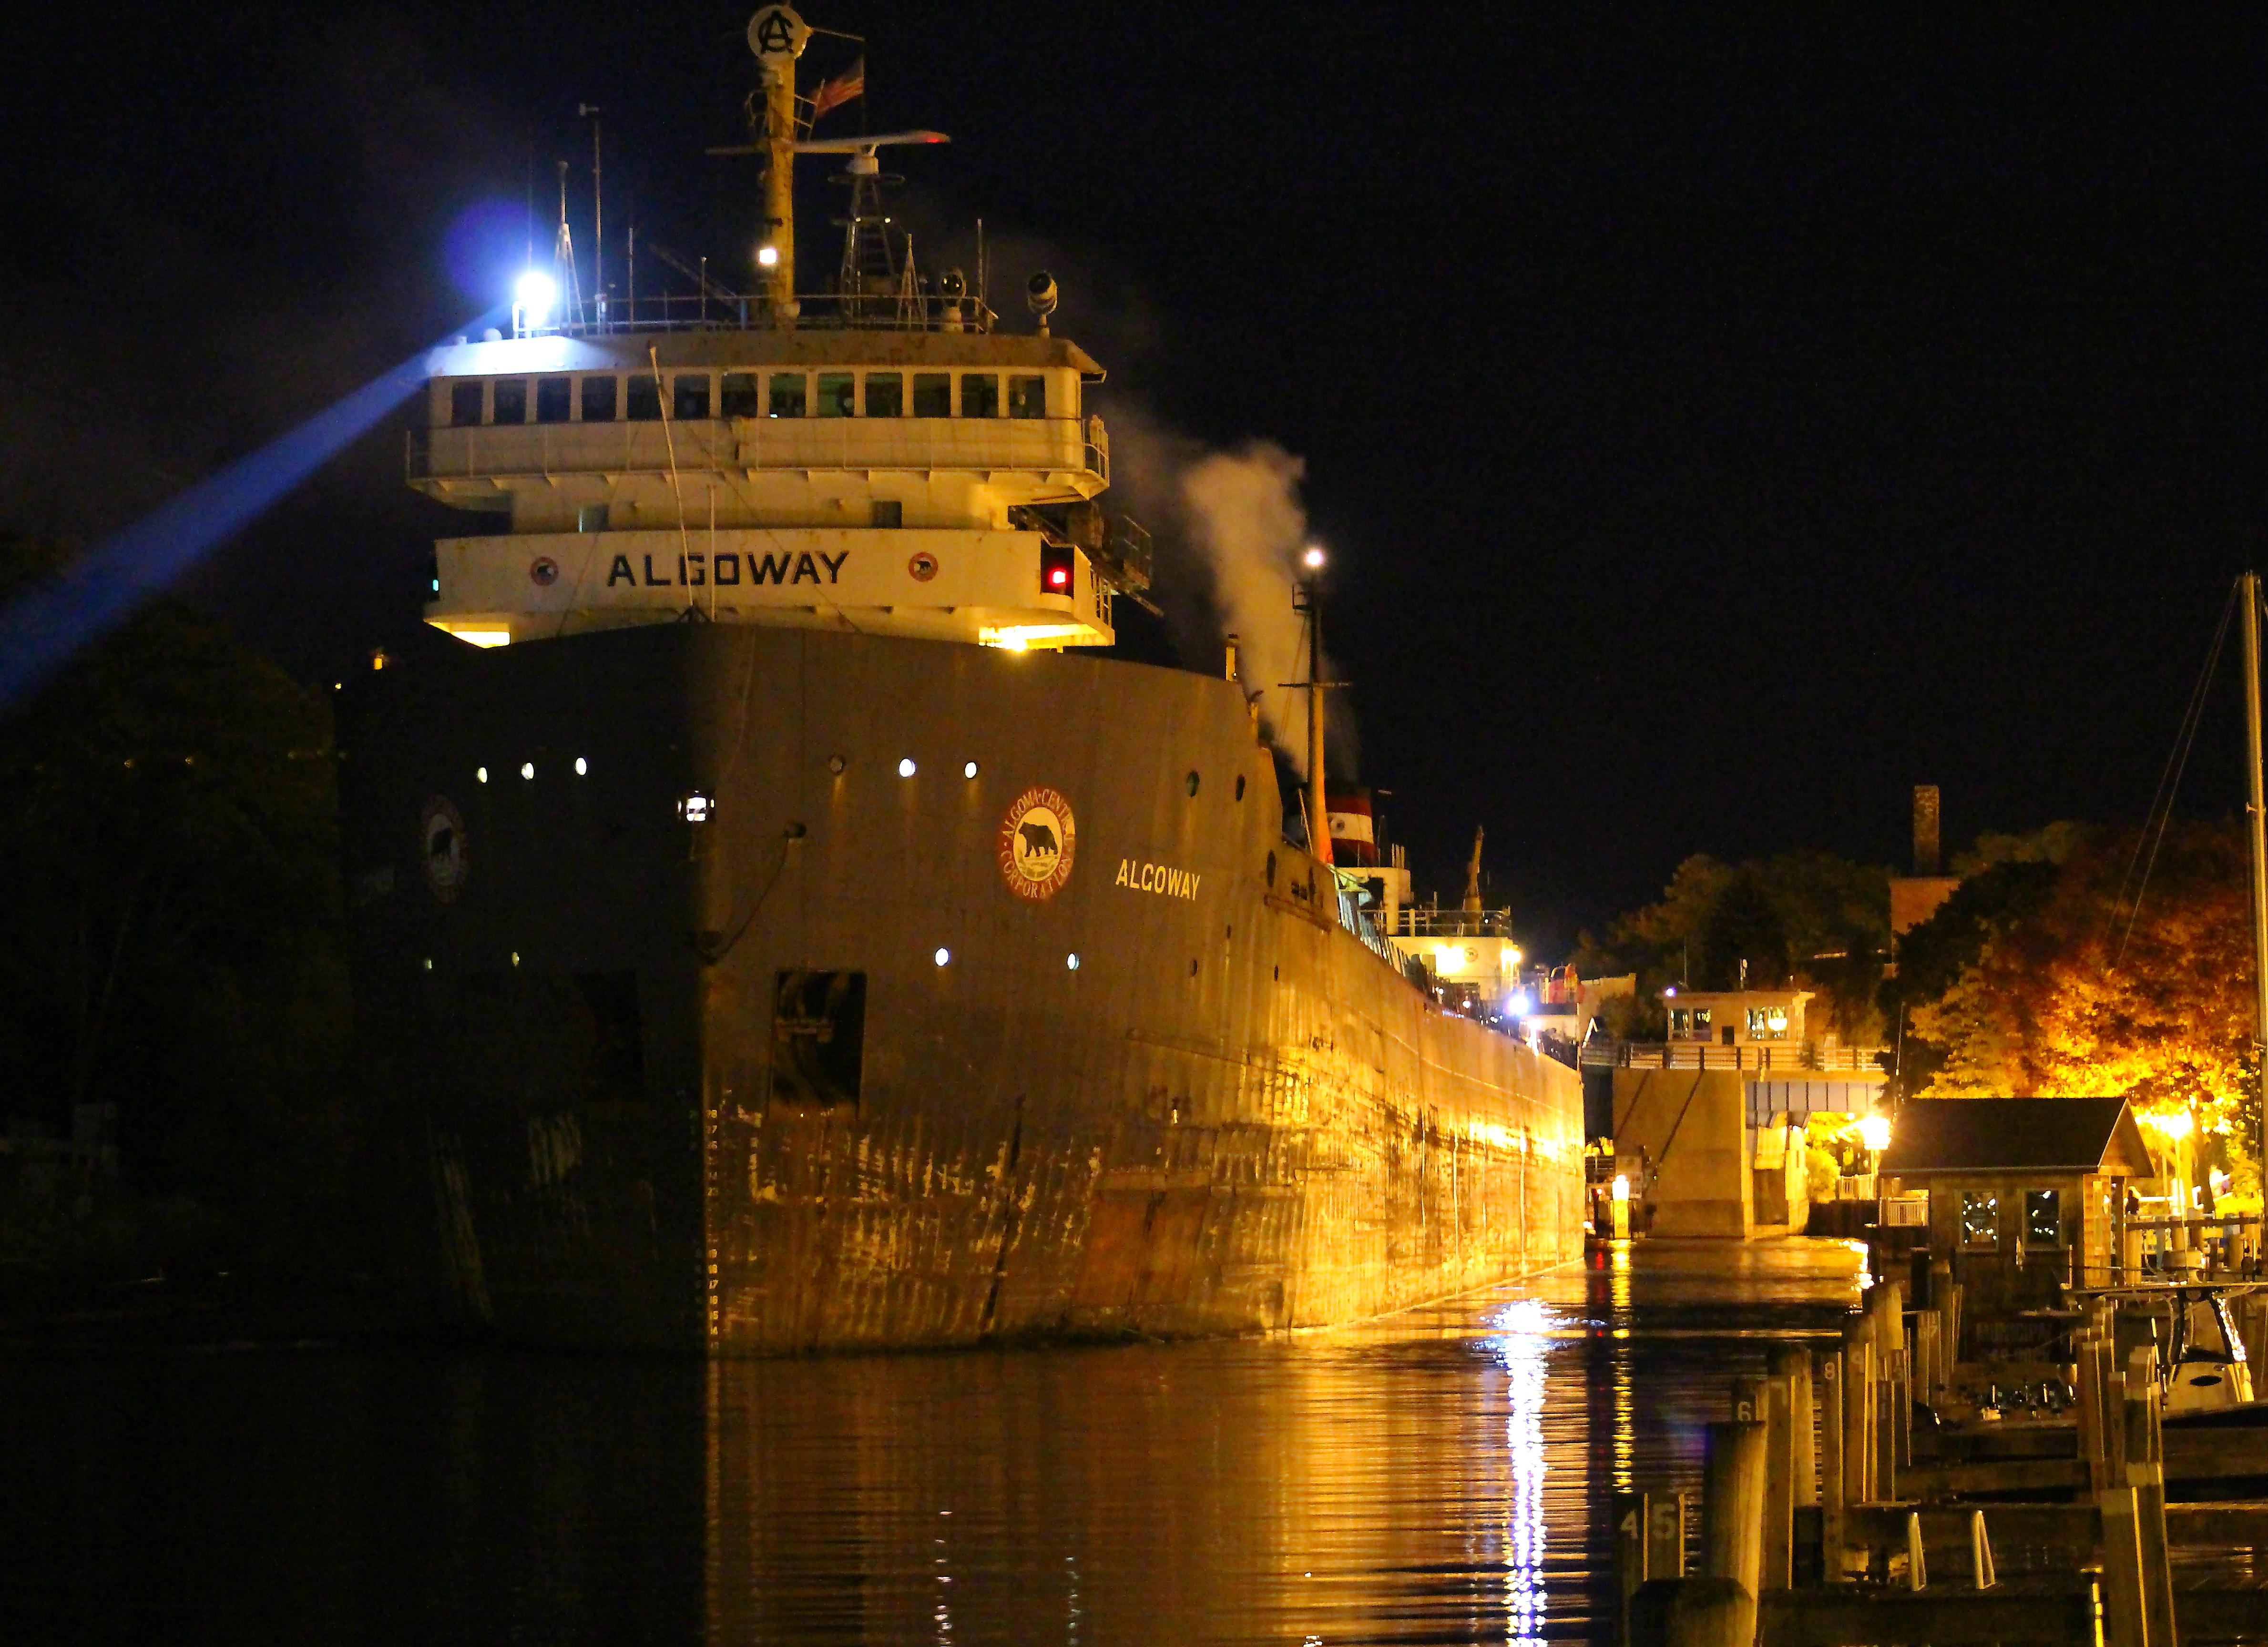 Freighter Algoway maneuvering the Manistee River Channel at night